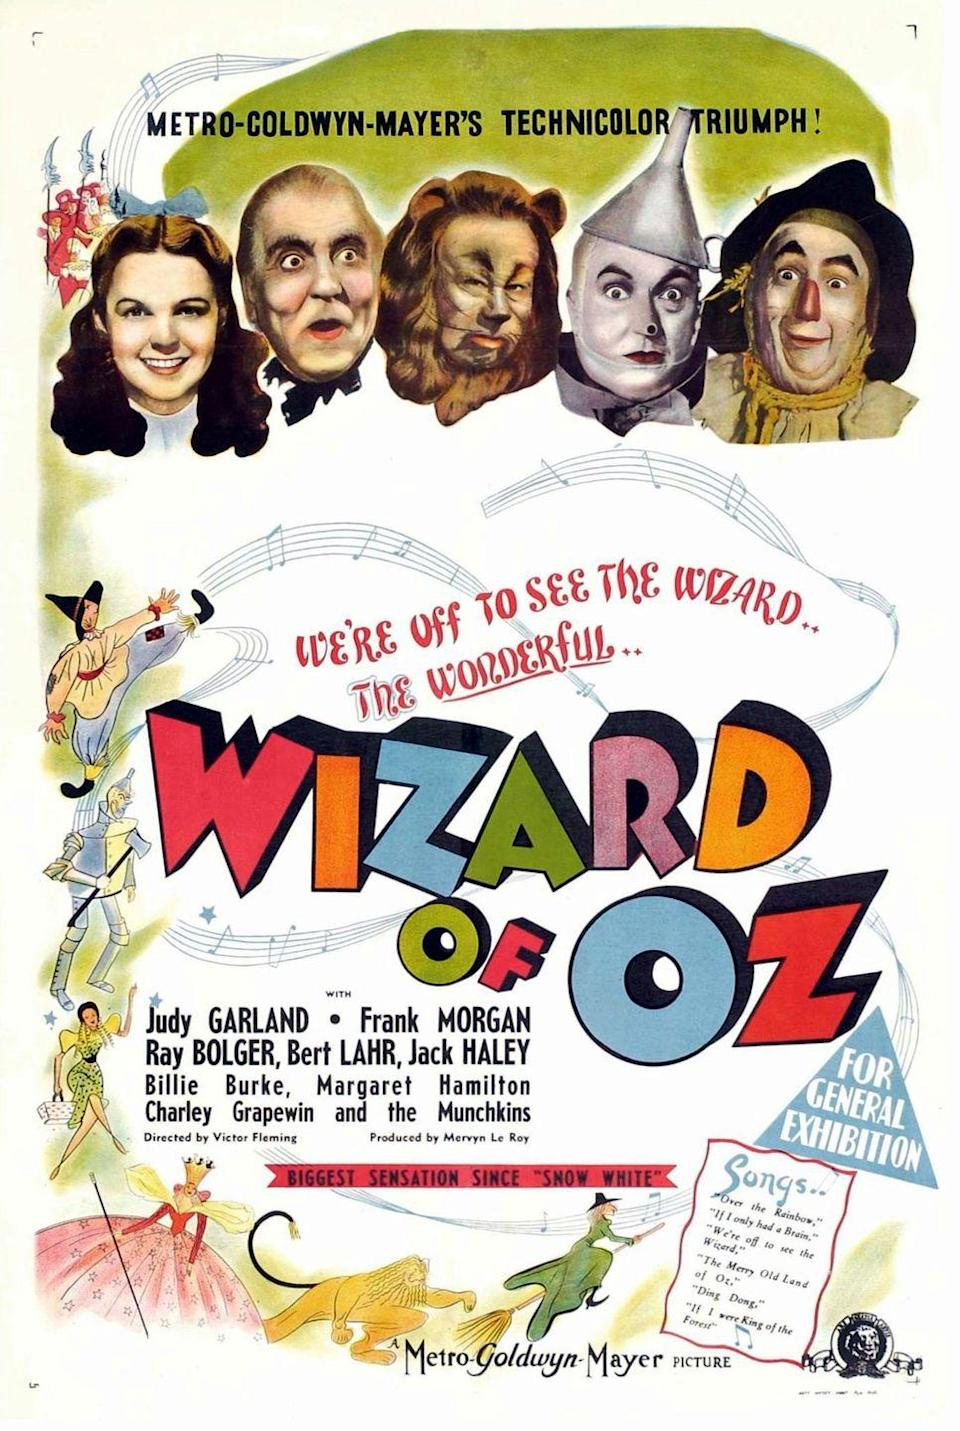 """<p>While it's not an adaptation, the fact that this movie was released in 1939 and people still quote it (and sing the songs) is a testament to how timeless it truly is. It's basically the definition of classic cinema. Dorothy's adventure in Oz and the battle against The Wicked Witch of the West is one of those movies that you have to stop and watch whenever it's on. And we're sure we'll feel similarly when the <a href=""""https://www.oprahdaily.com/entertainment/a26256094/wicked-movie-dream-cast/"""" rel=""""nofollow noopener"""" target=""""_blank"""" data-ylk=""""slk:Wicked movie"""" class=""""link rapid-noclick-resp""""><em>Wicked</em> movie</a> is released.</p><p><a class=""""link rapid-noclick-resp"""" href=""""https://www.amazon.com/Wizard-Oz-Judy-Garland/dp/B002QRBB30?tag=syn-yahoo-20&ascsubtag=%5Bartid%7C10072.g.27734413%5Bsrc%7Cyahoo-us"""" rel=""""nofollow noopener"""" target=""""_blank"""" data-ylk=""""slk:WATCH NOW"""">WATCH NOW</a></p>"""